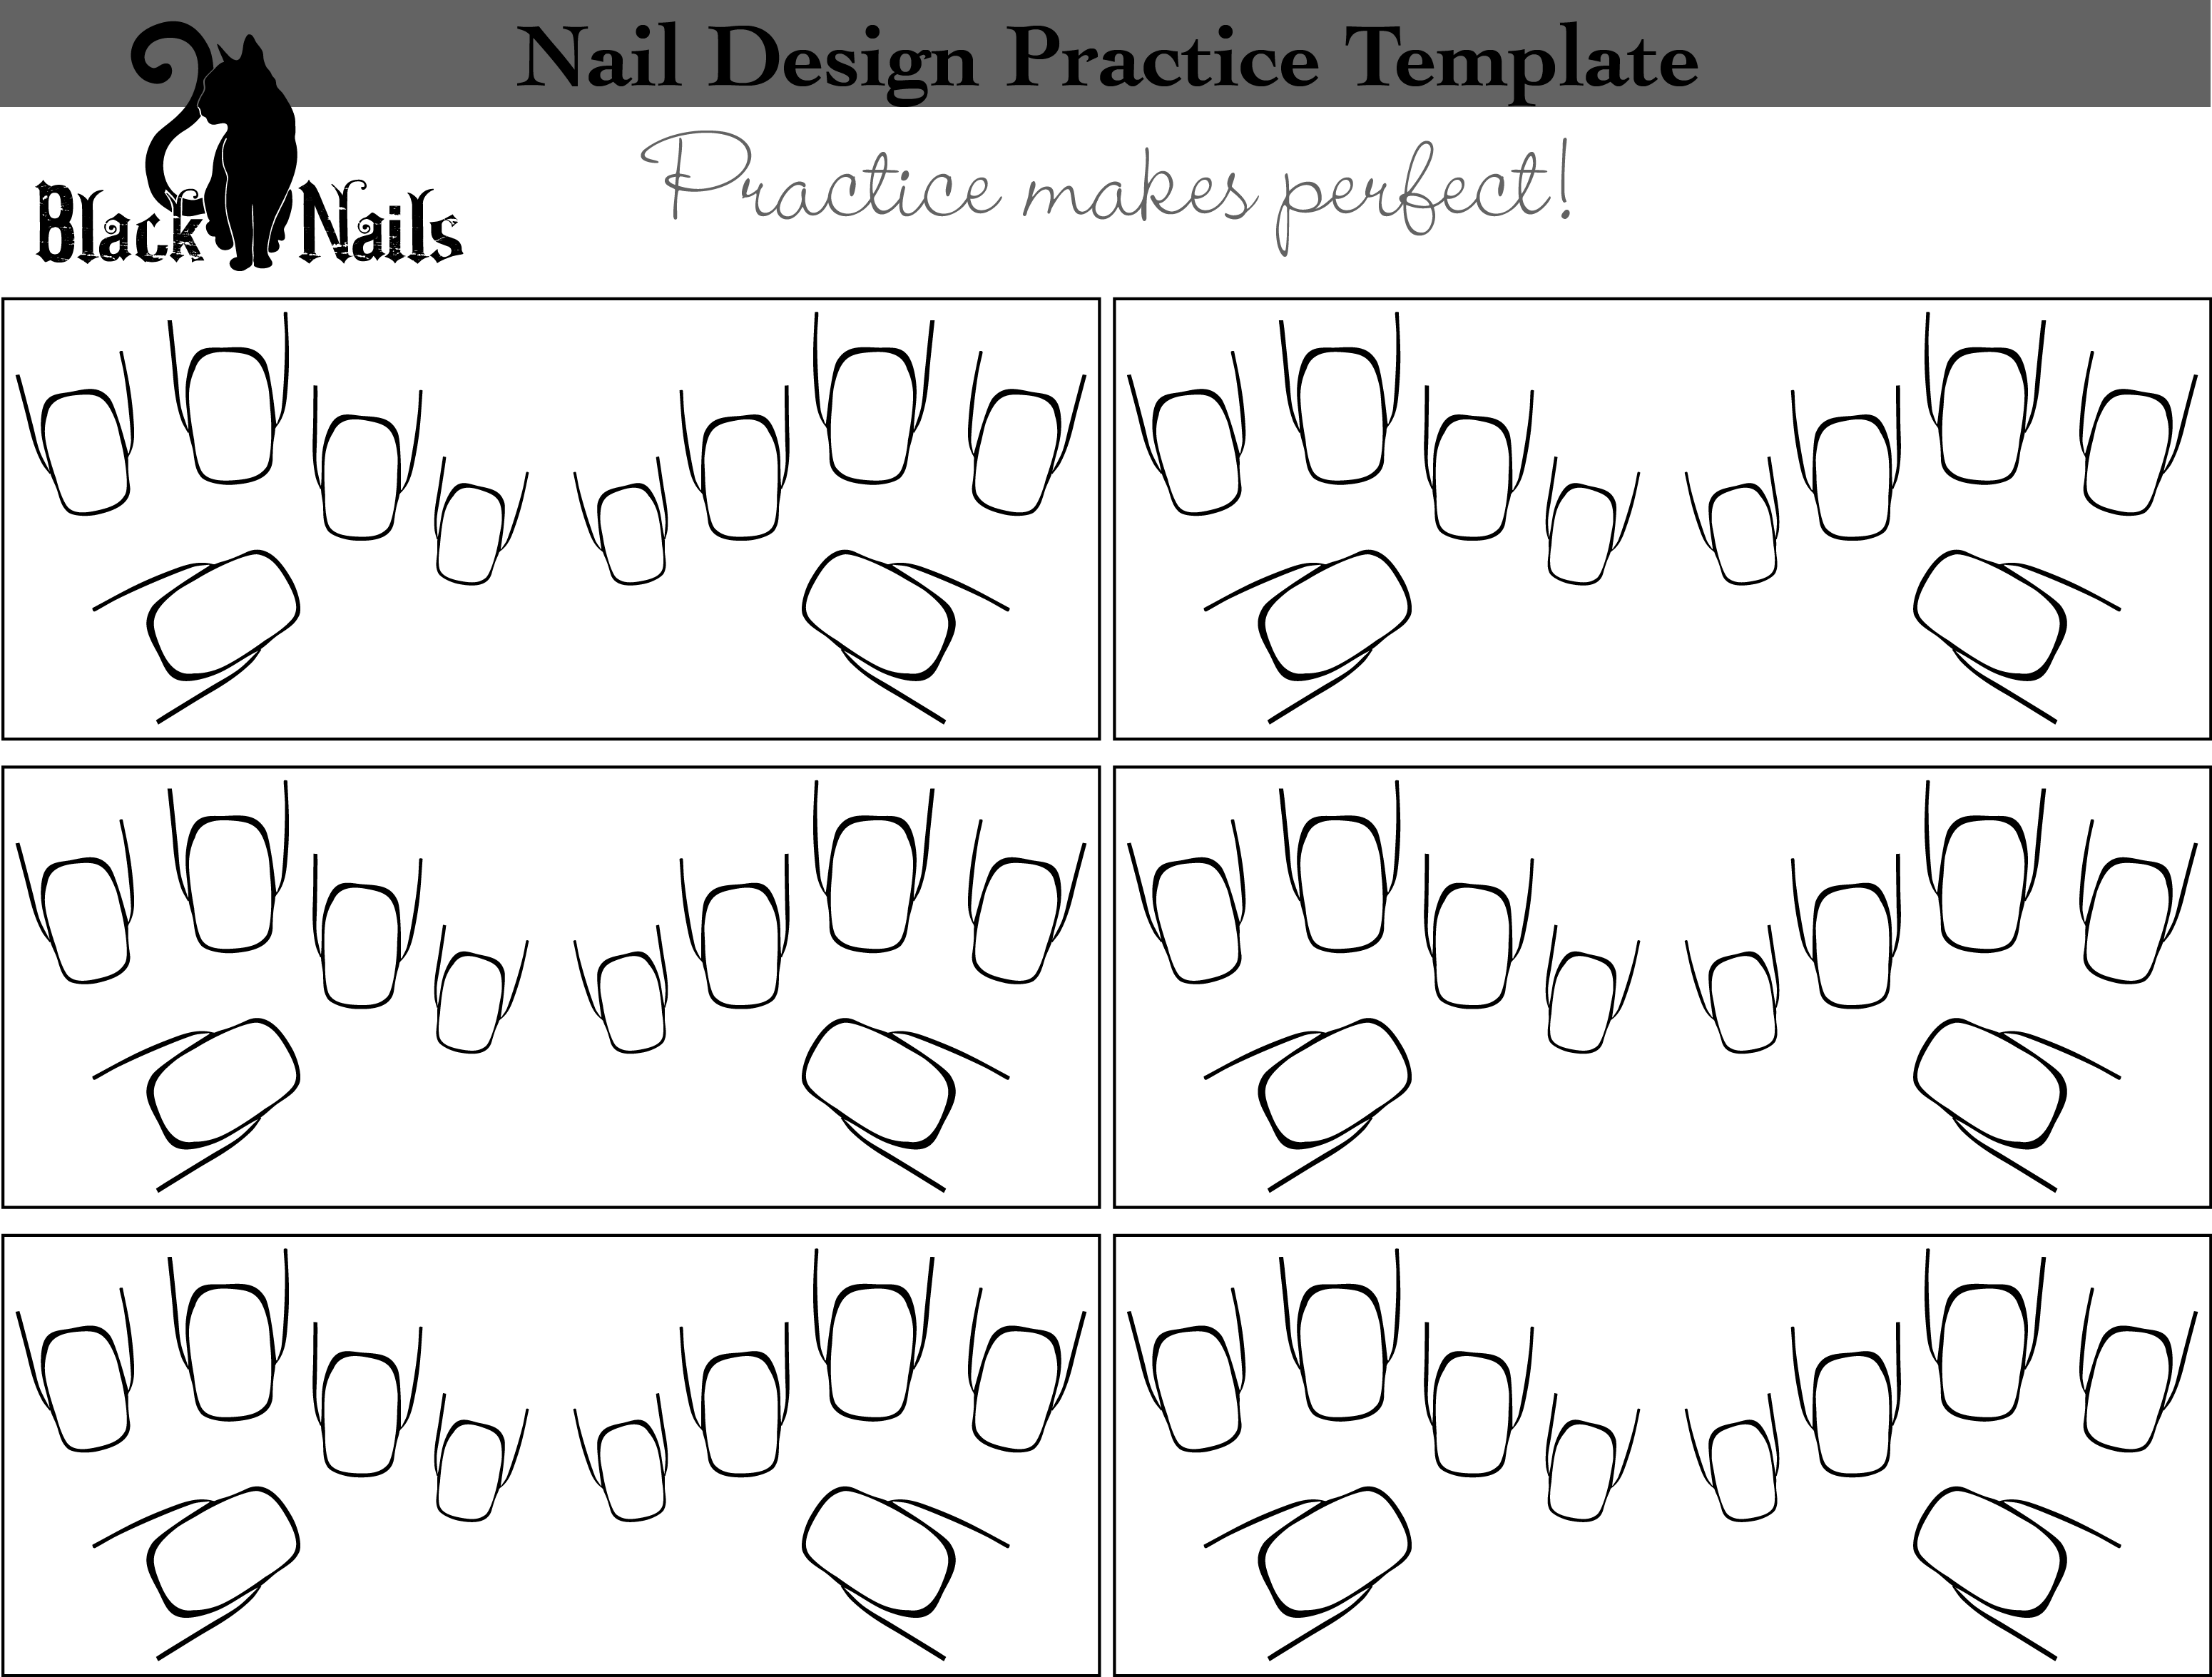 Nail Art Design Practice Sheet Full Hand Versions Black Cat Nails Coloring Pages